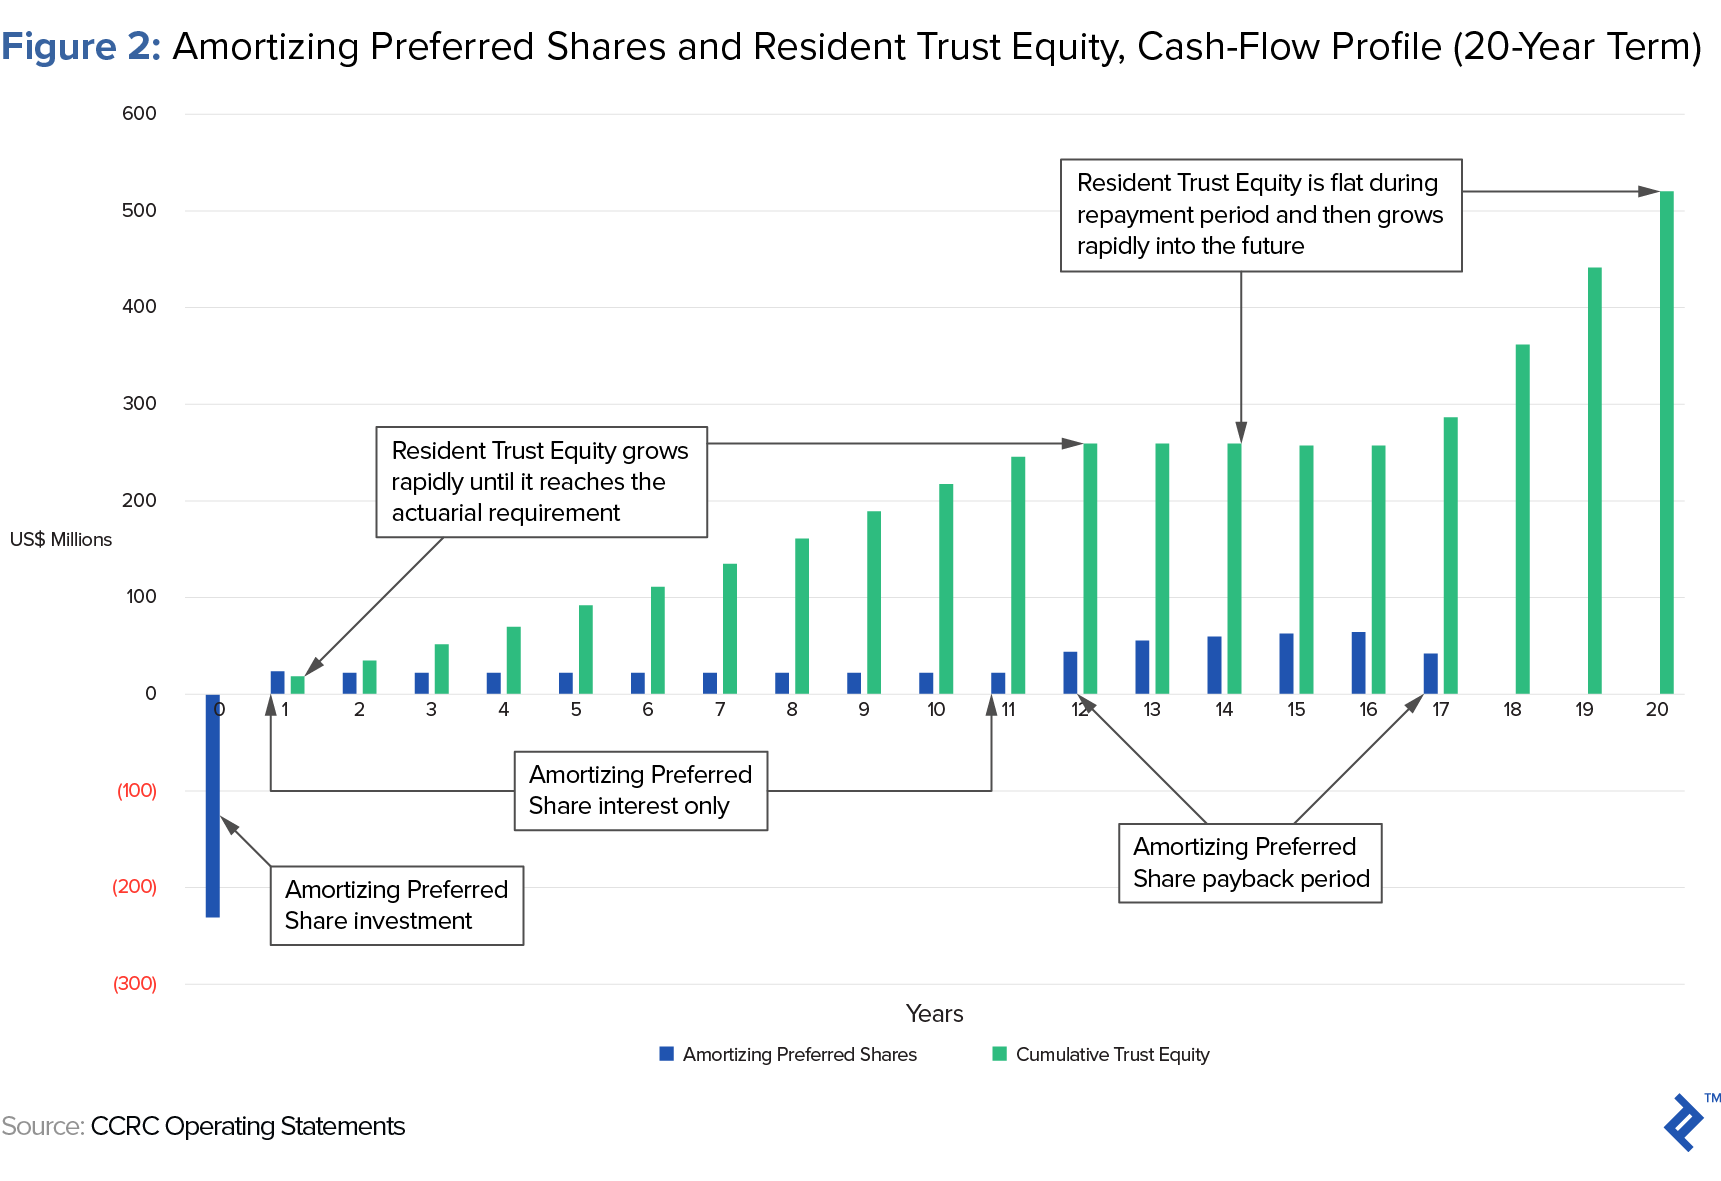 amortizing preferred shares and resident trust equity, cash-flow profile - 20-year term